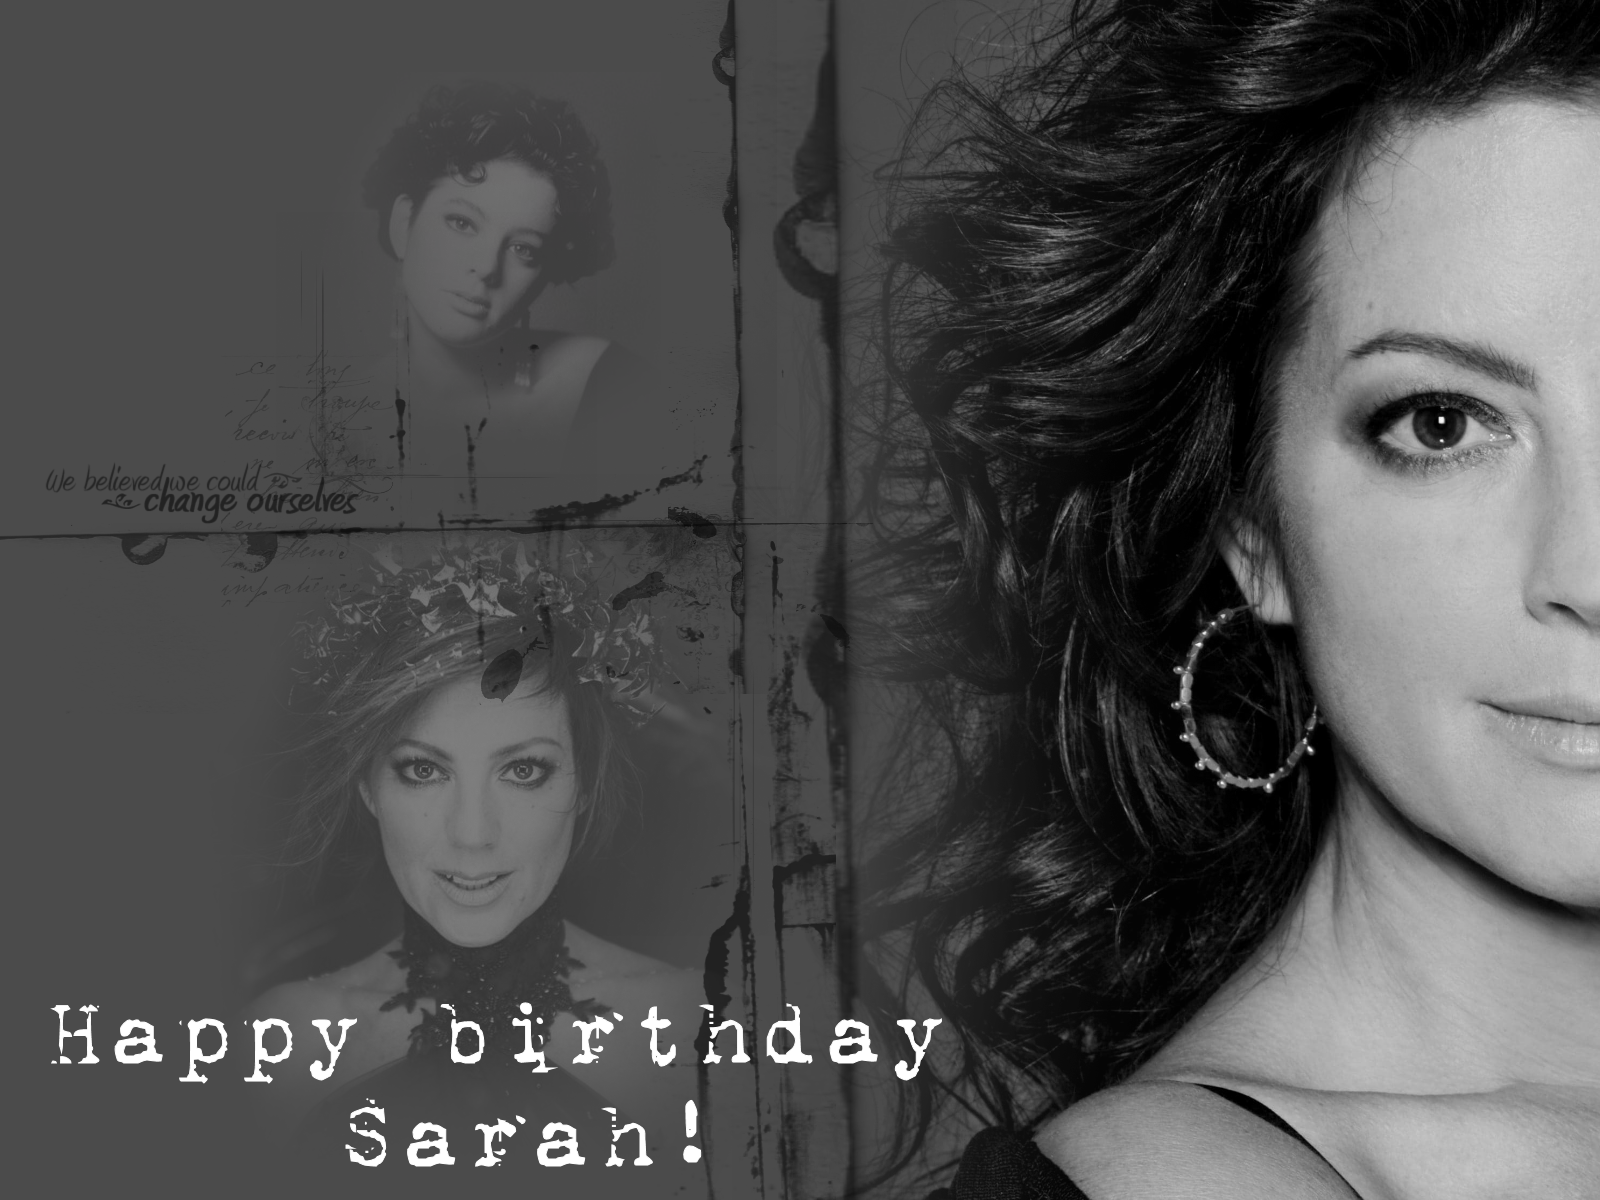 Sarah McLachlan Online – Solaced info » Blog Archive » Happy